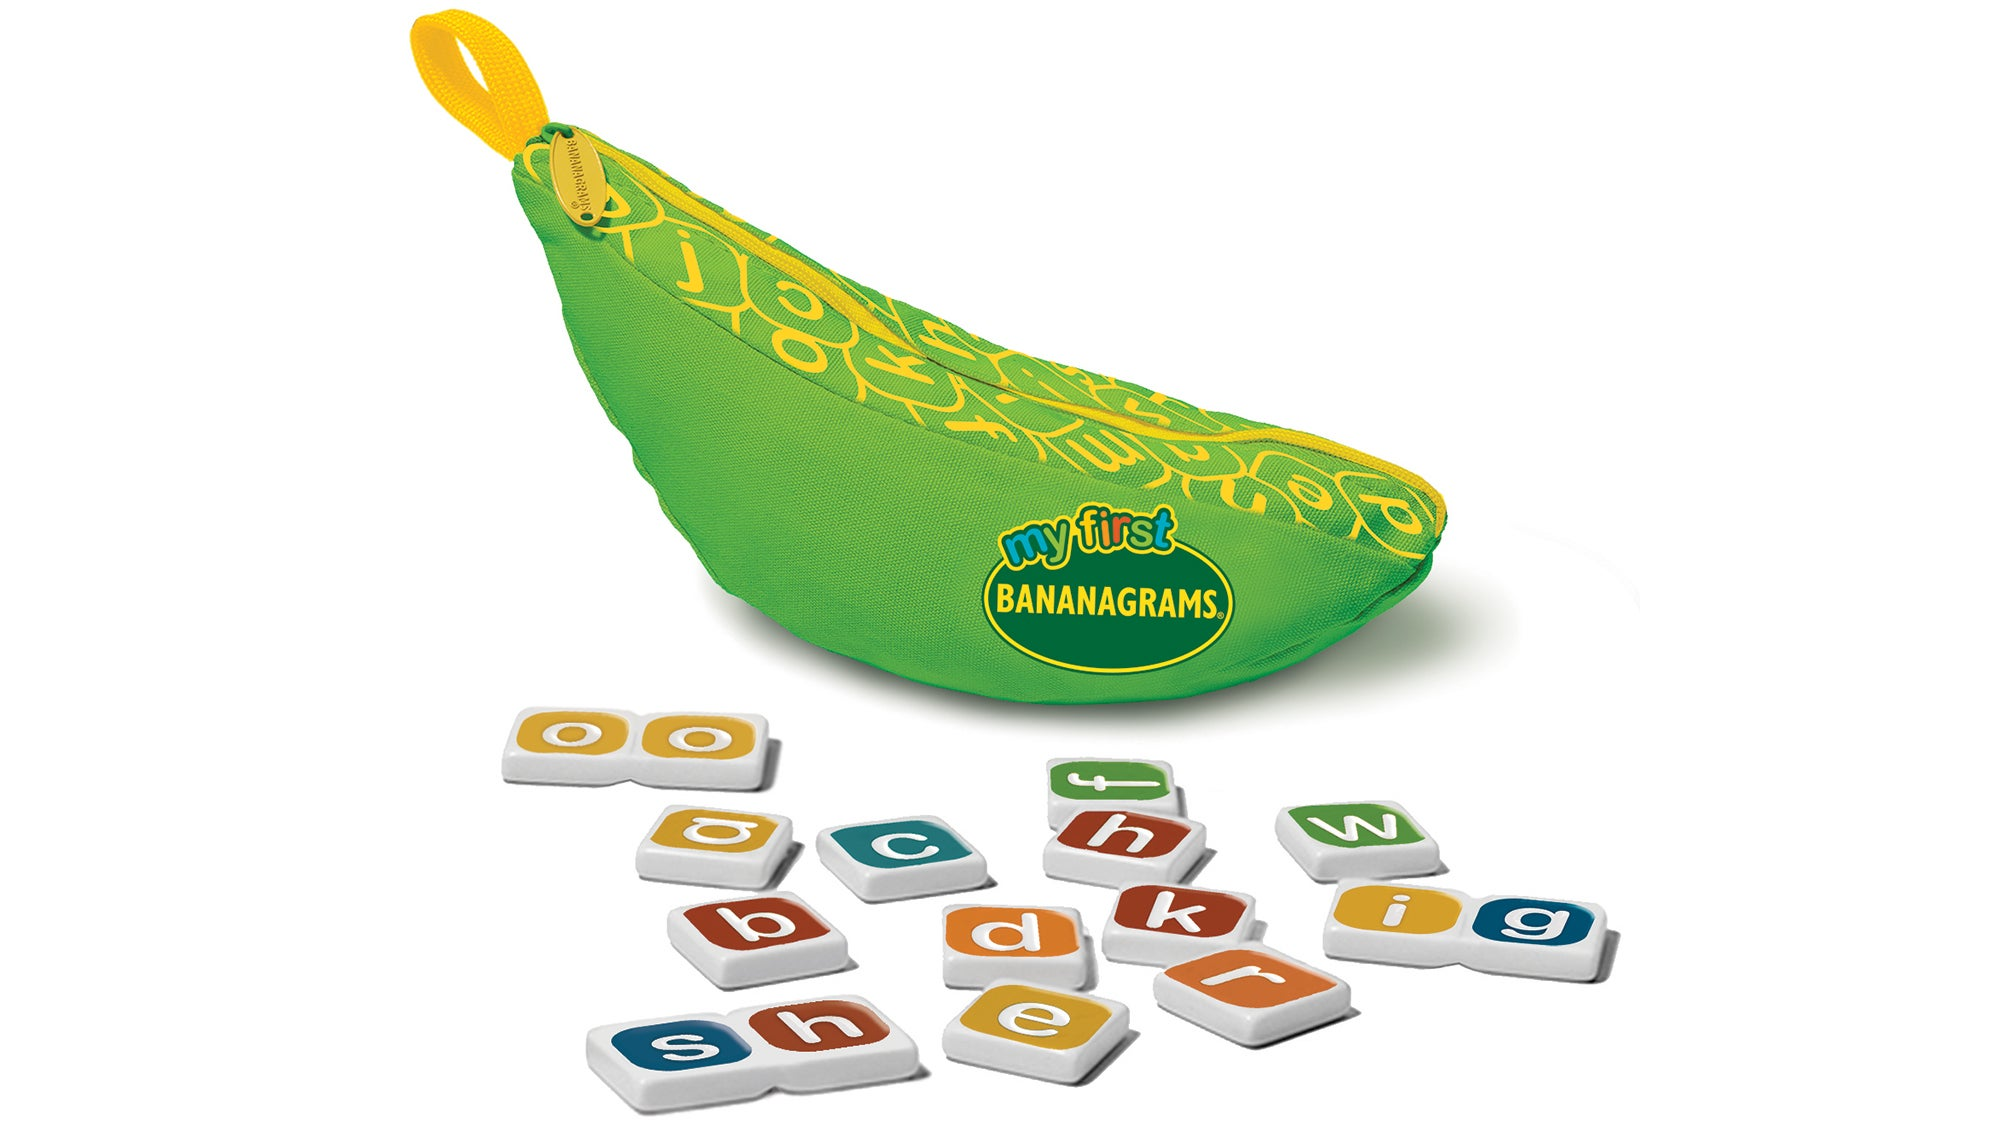 The New Version of Bananagrams Encourages Players to Sabotage Each Other